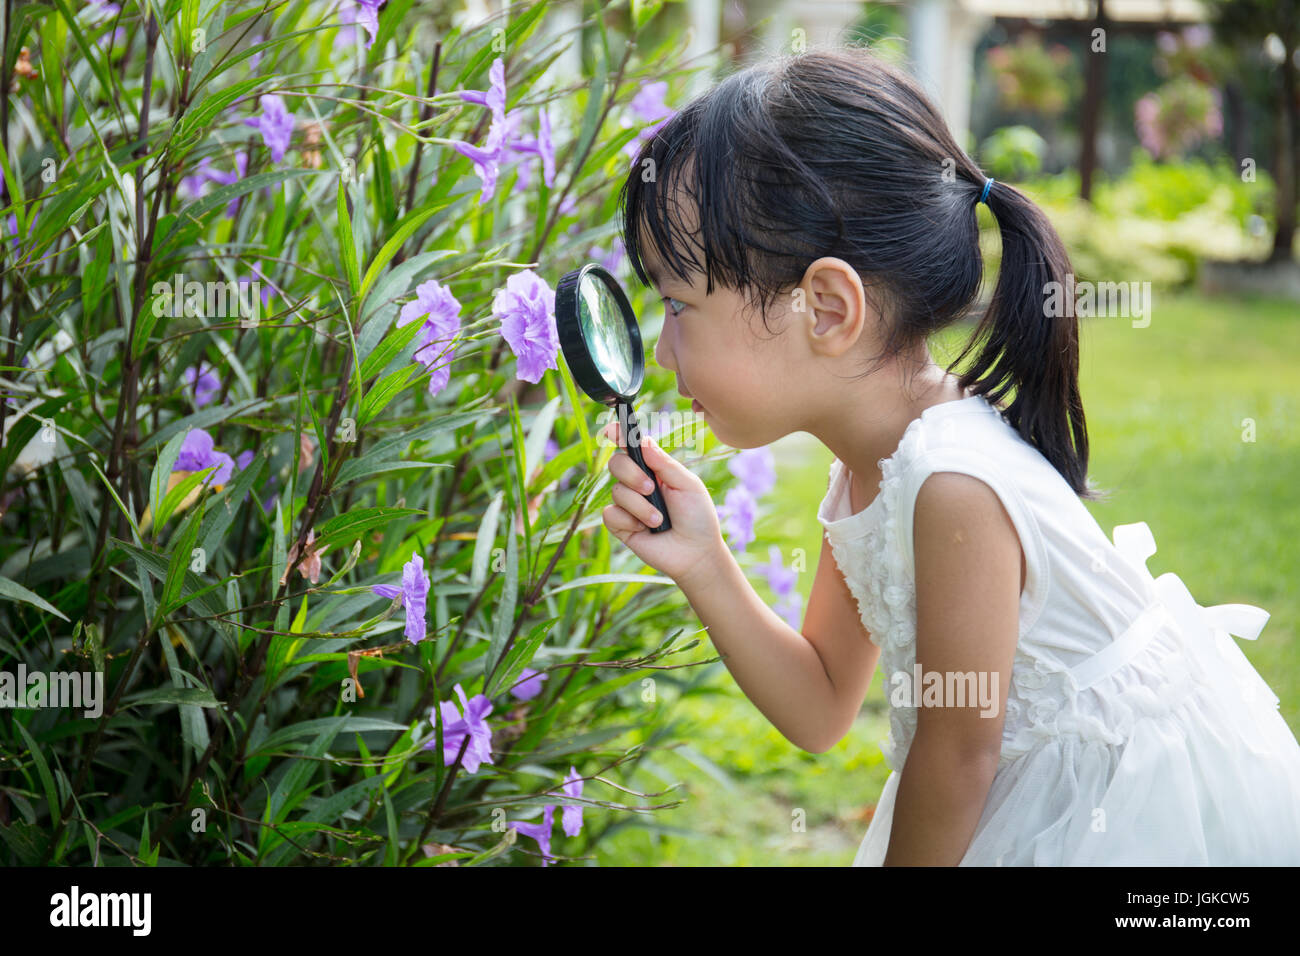 Asian Chinese little girl looking at flower through a magnifying glass in outdoor garden - Stock Image